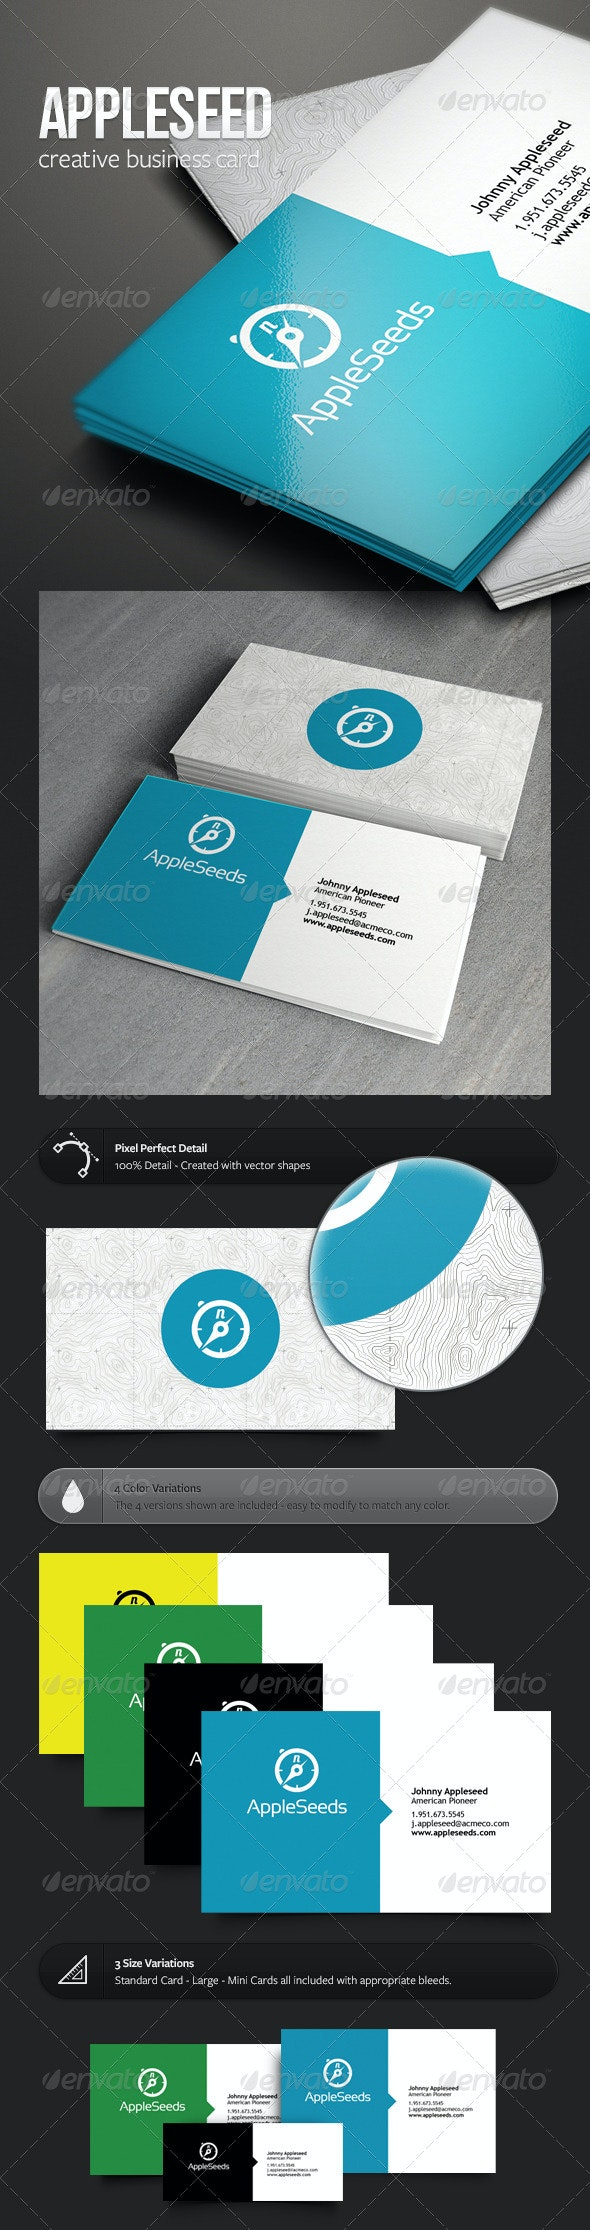 Appleseed Business Card - Creative Business Cards